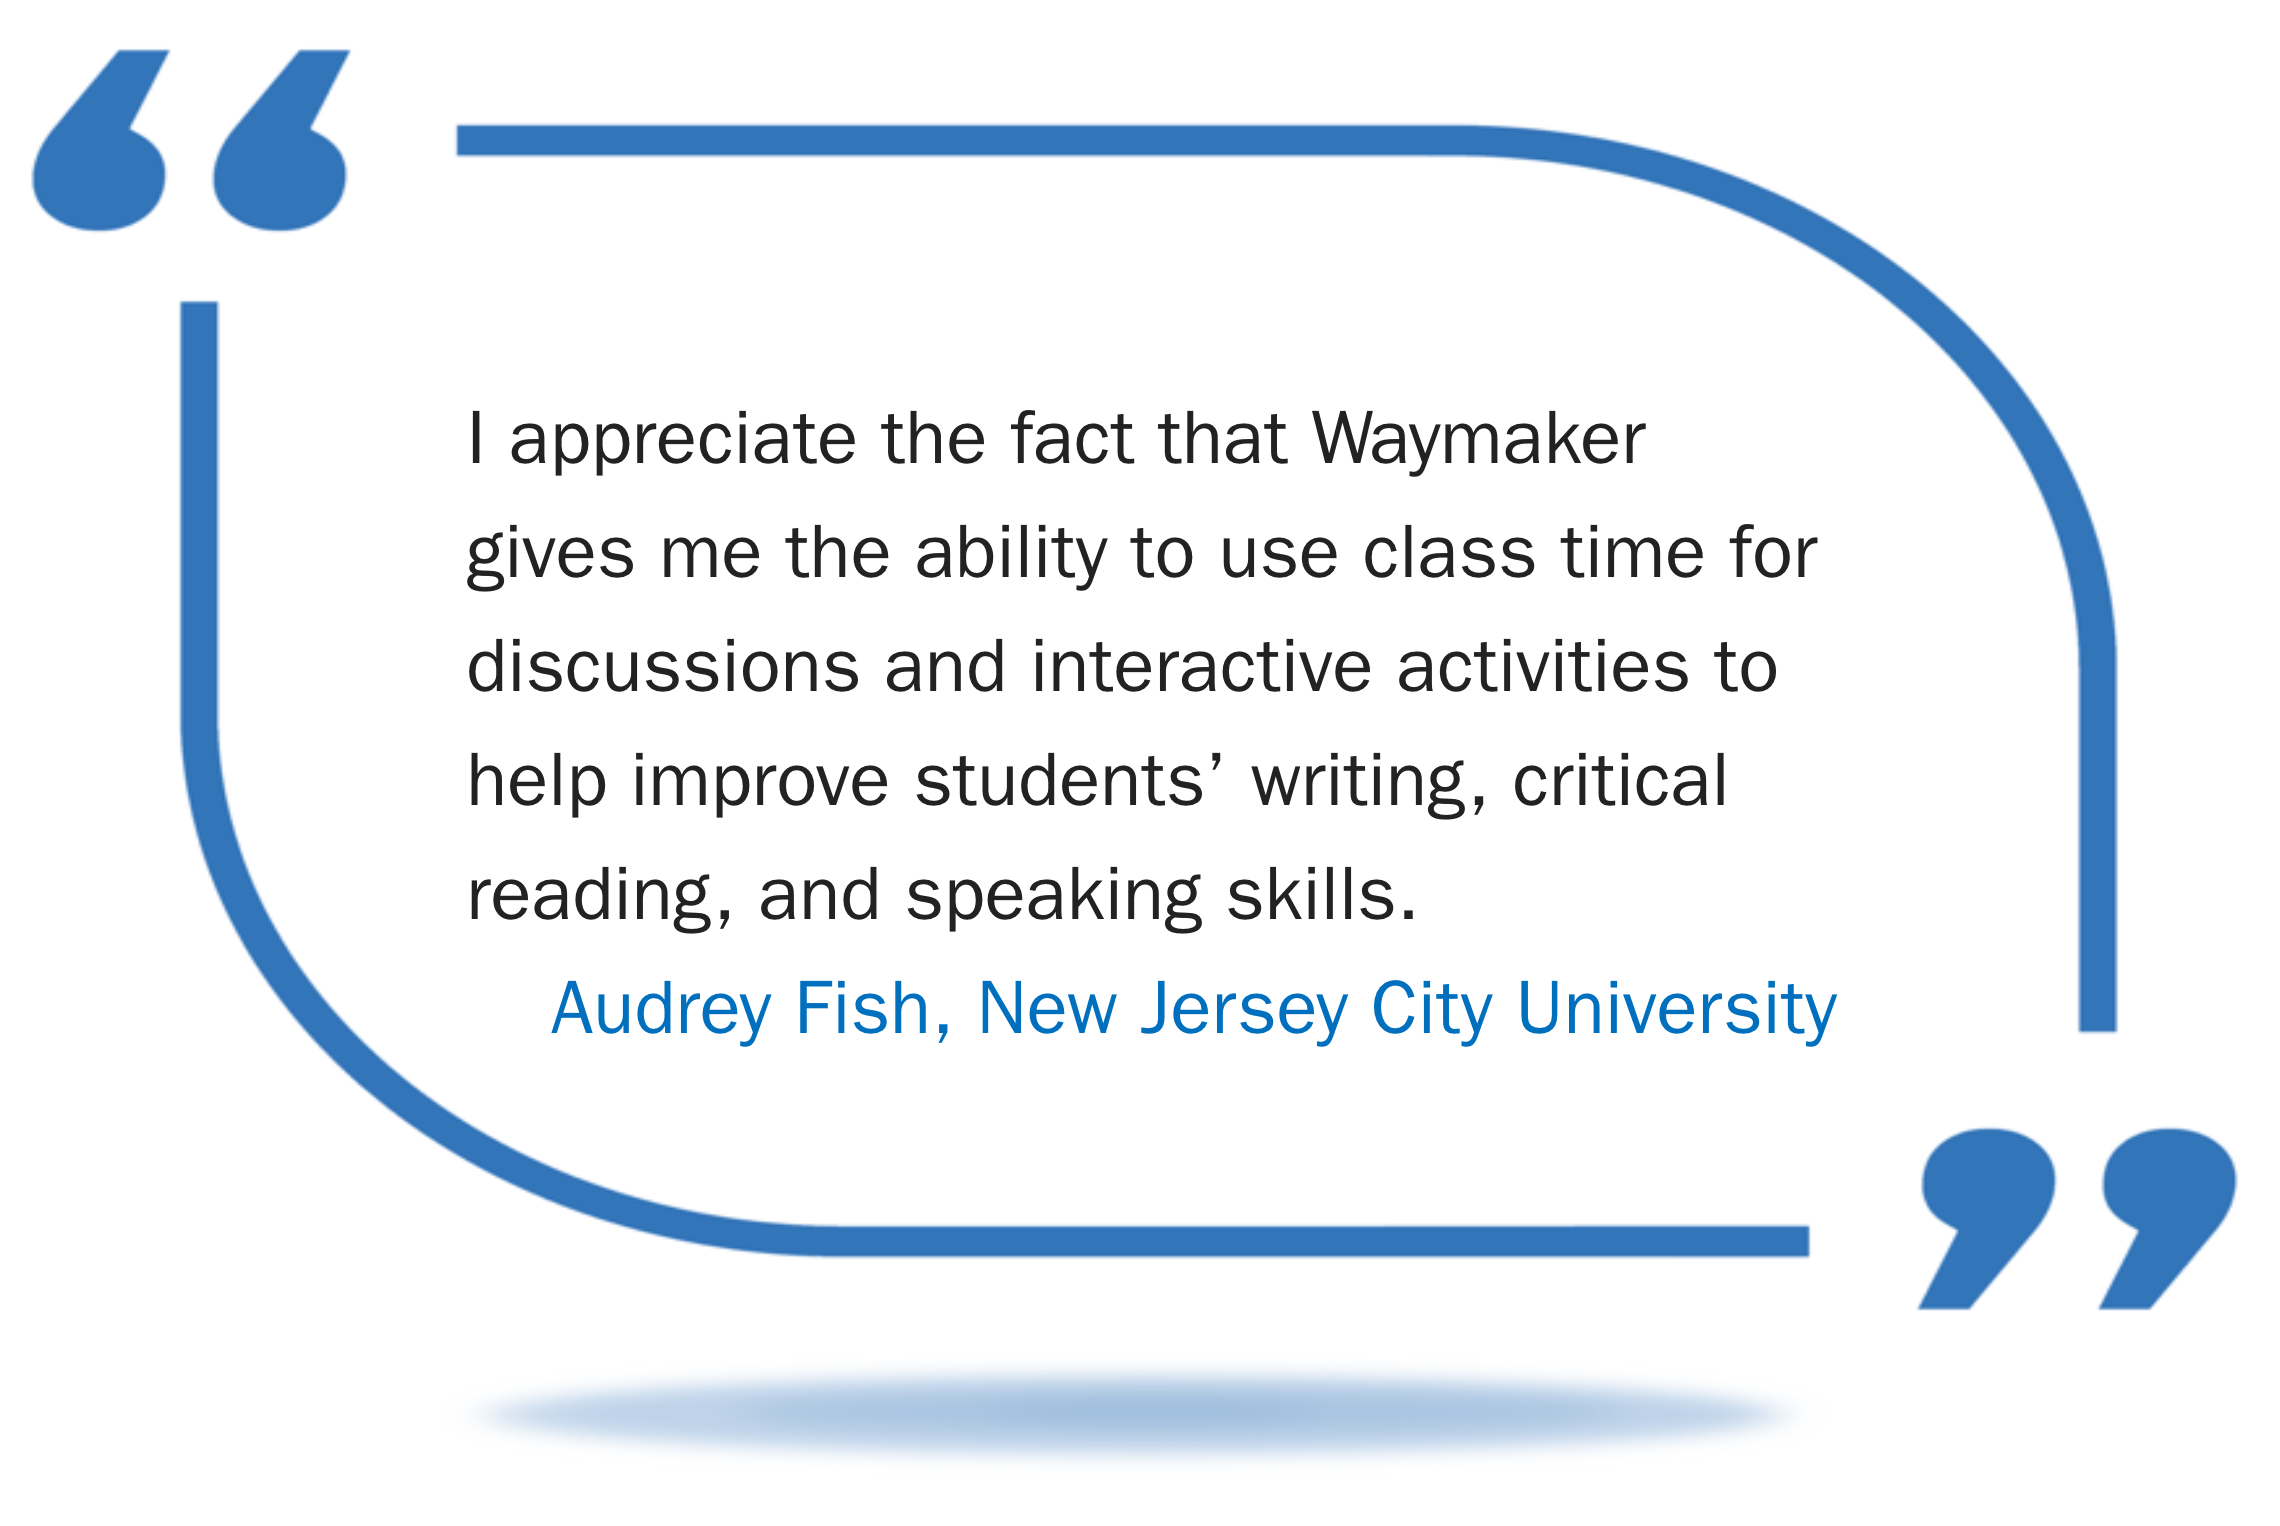 I appreciate the fact that Waymaker gives me the ability to use class time for discussions and interactive activities to help improve students' writing, critical reading, and speaking skills.  Said by Audrey Fish, New Jersey City University